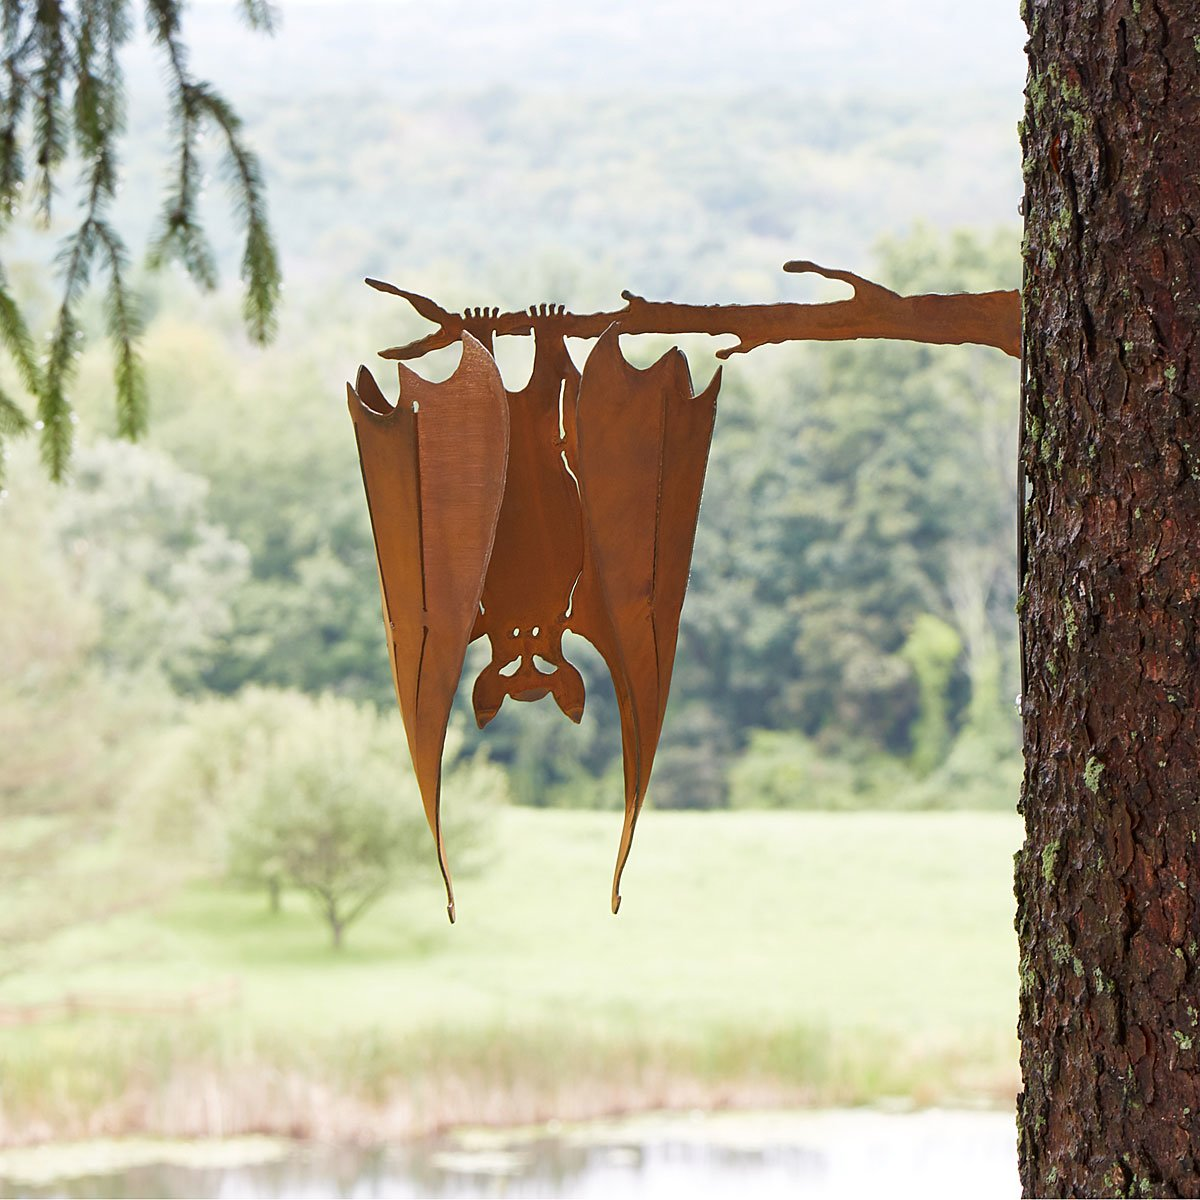 bat on a branch 1 thumbnail